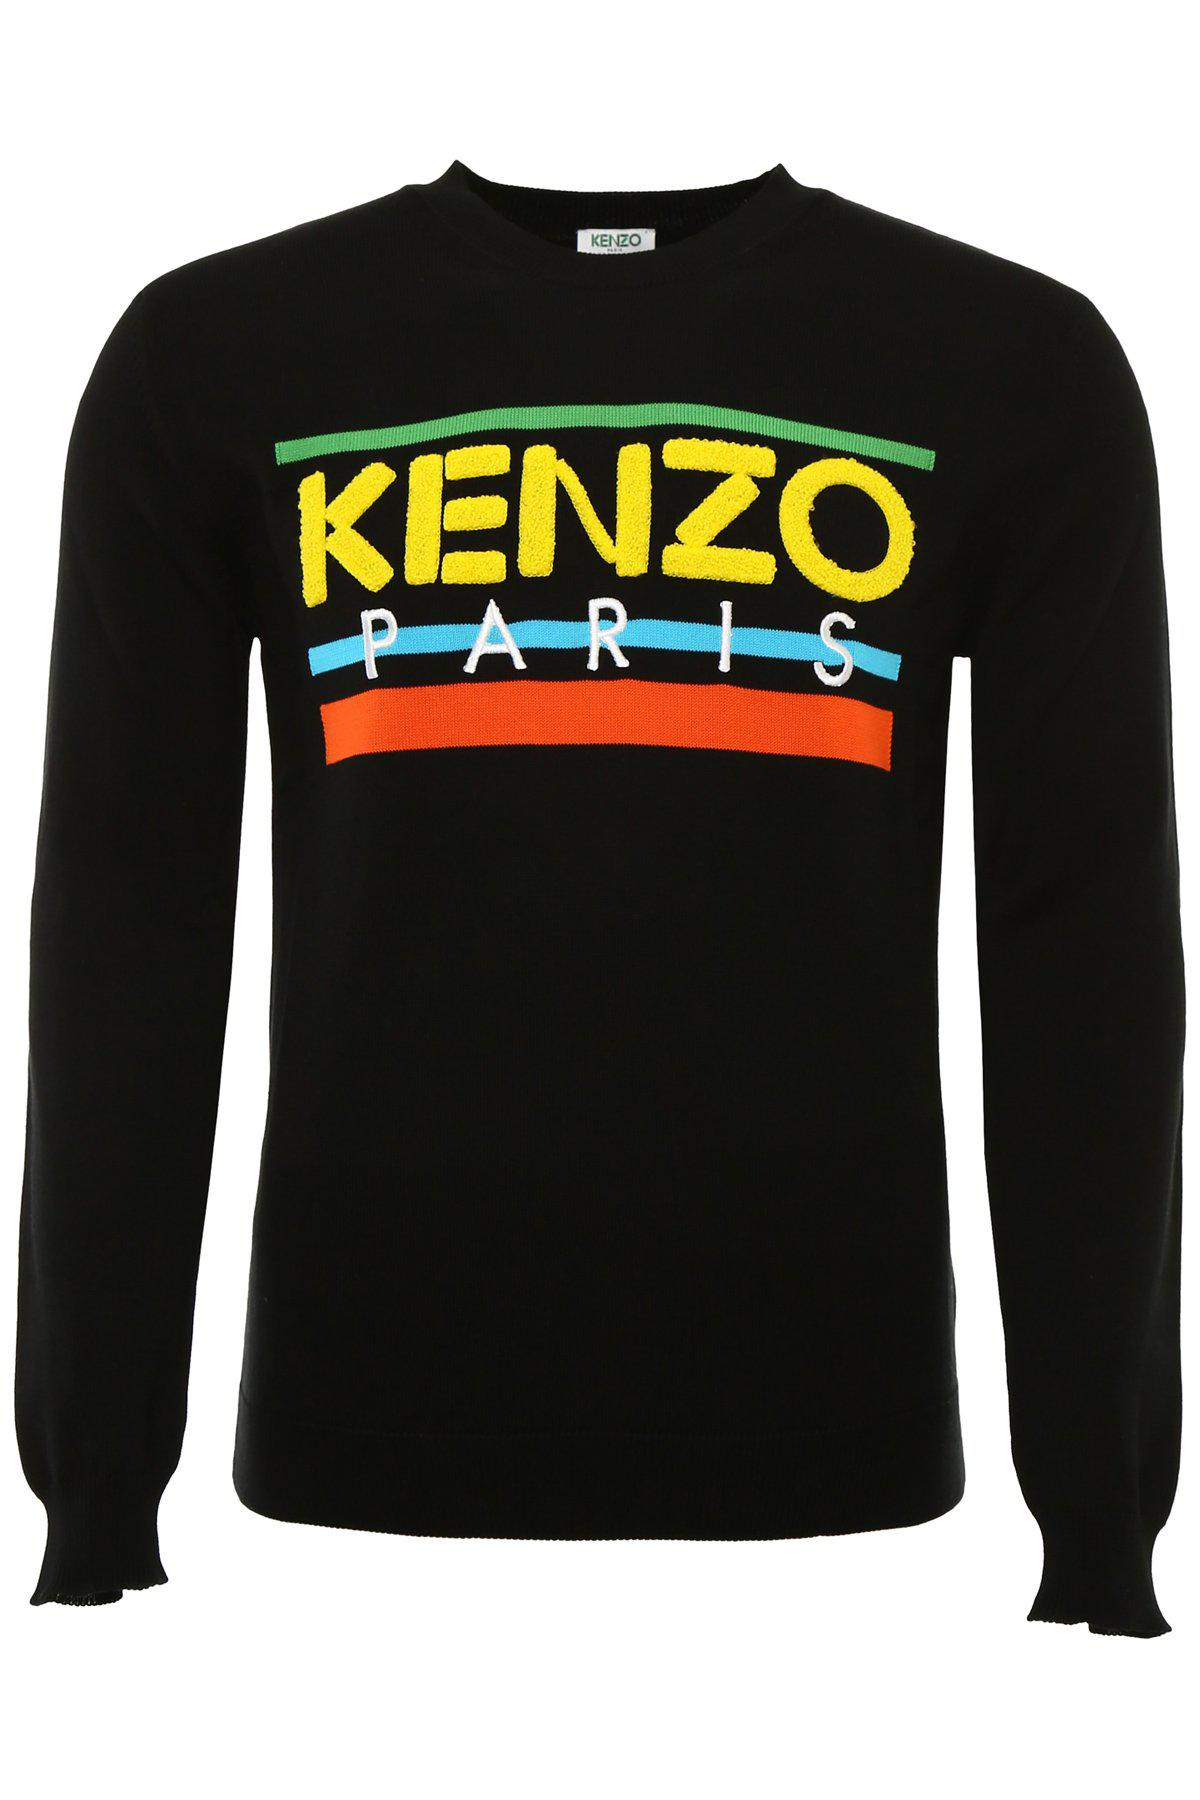 bd74a5ca KENZO Paris Sweater in Black for Men - Lyst